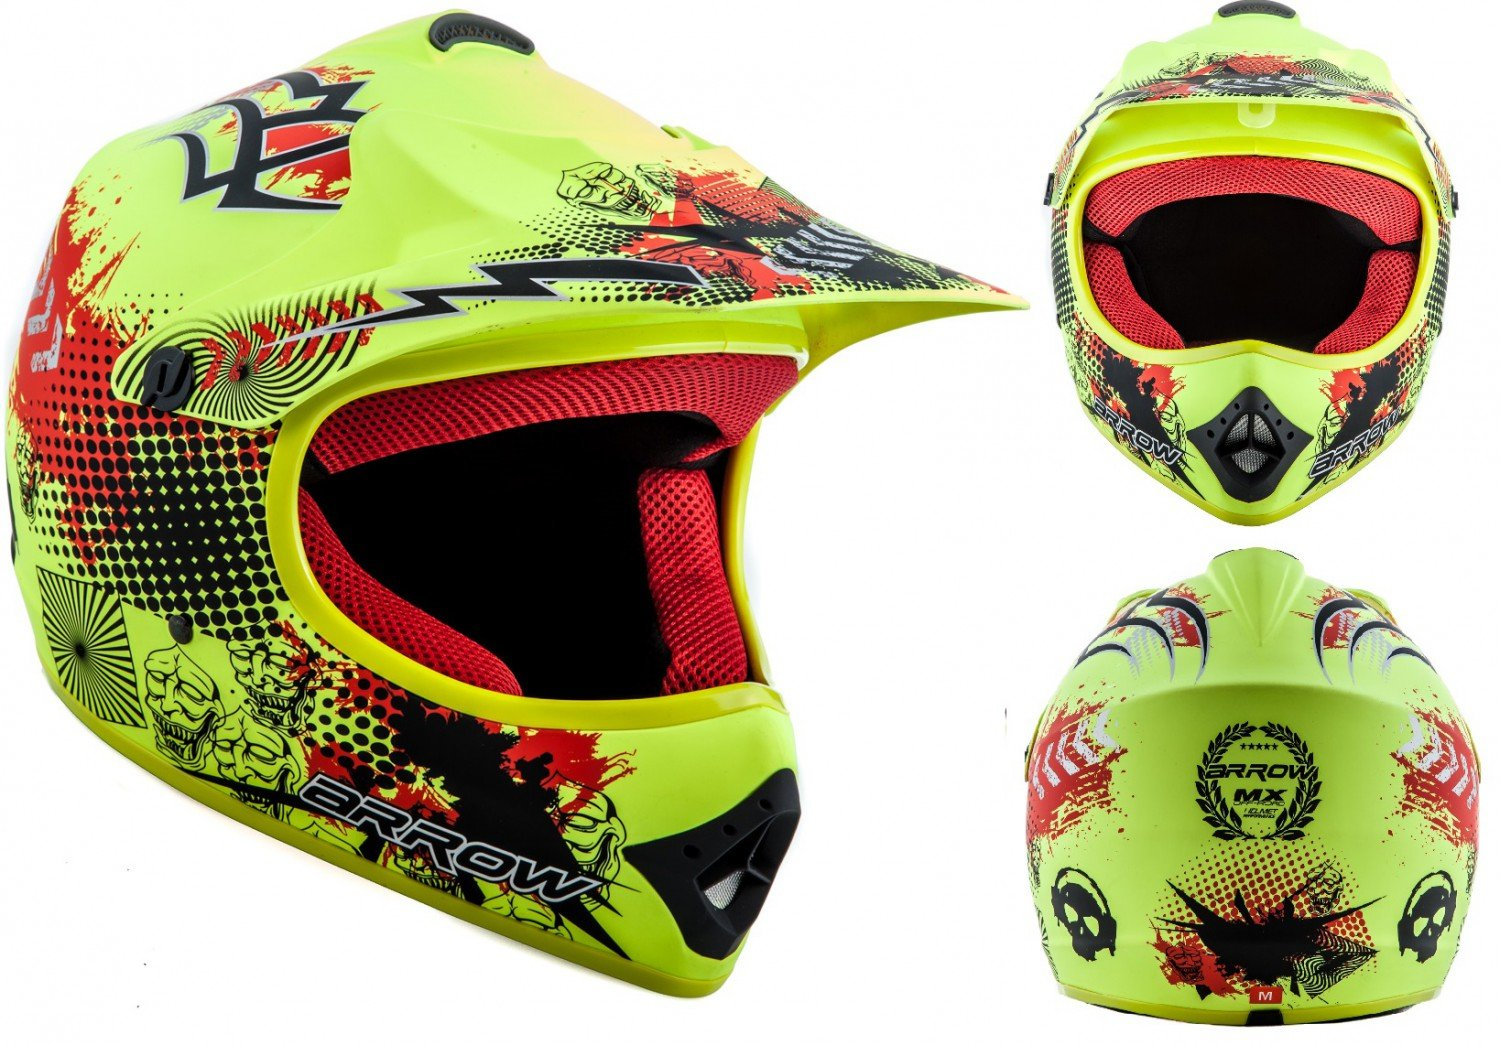 ARROW AKC-49 Limited Yellow Sport Cross-Bike Racing Bambino Off-Road Scooter Casco Moto-Cross Junior